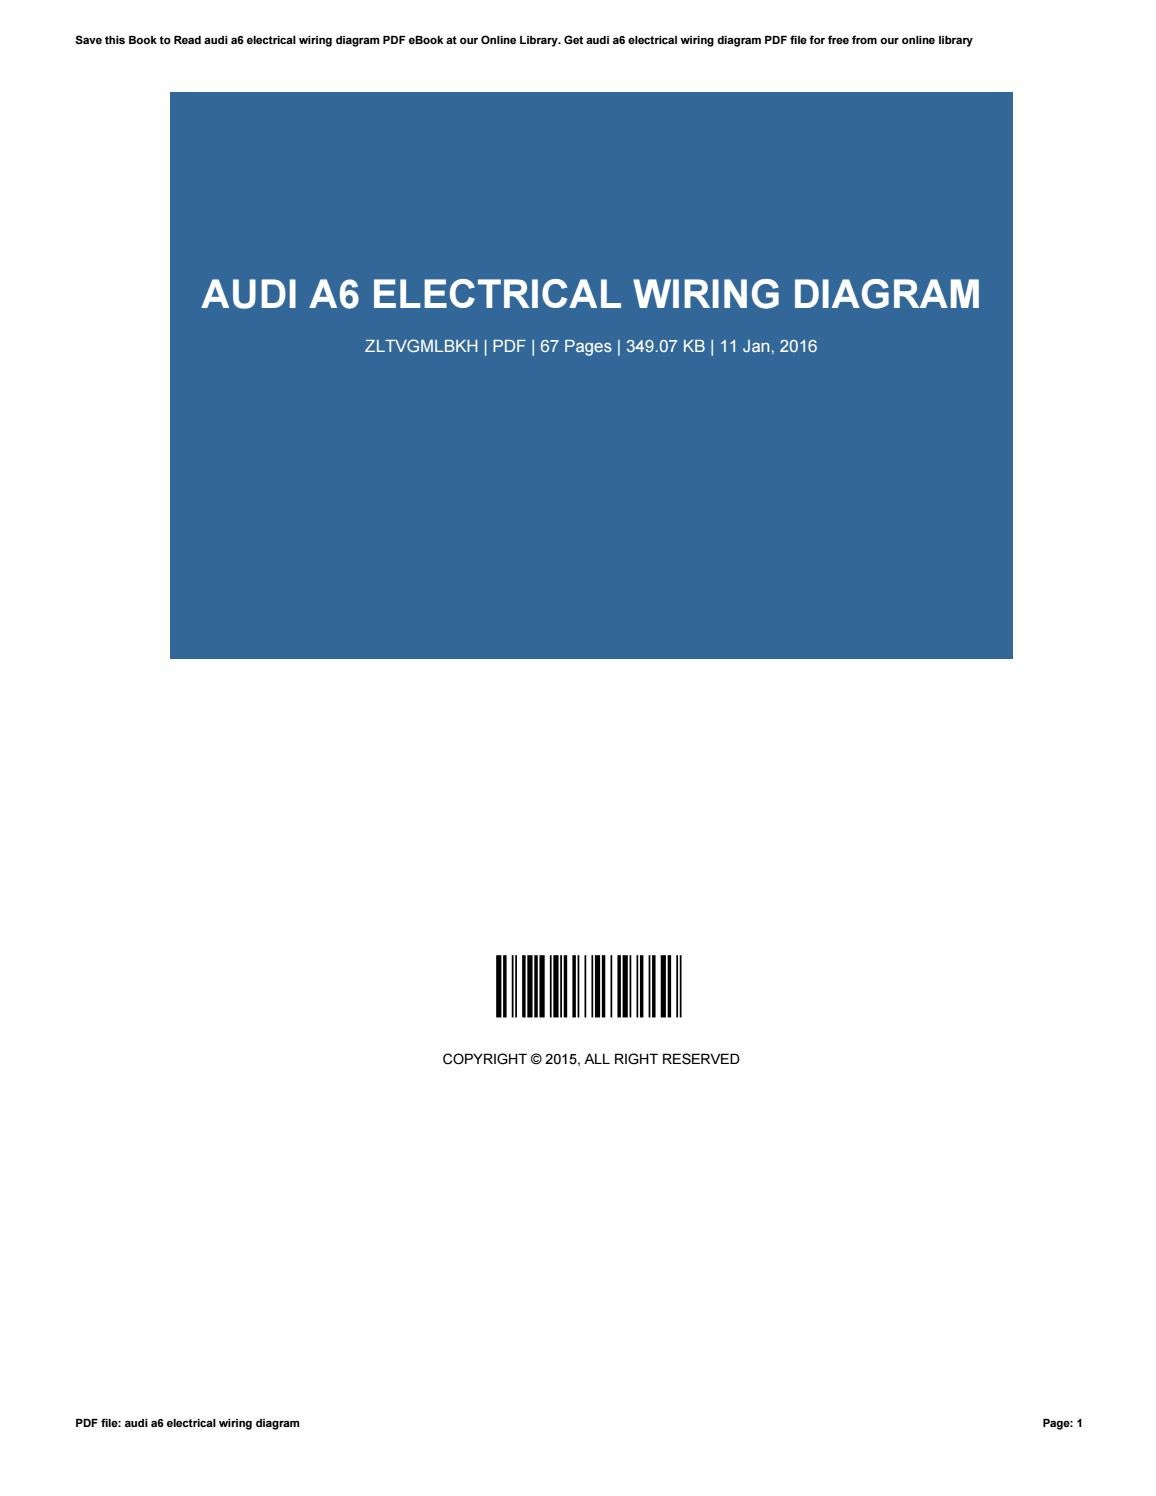 Audi A6 Electrical Wiring Diagram By Willielewis3667